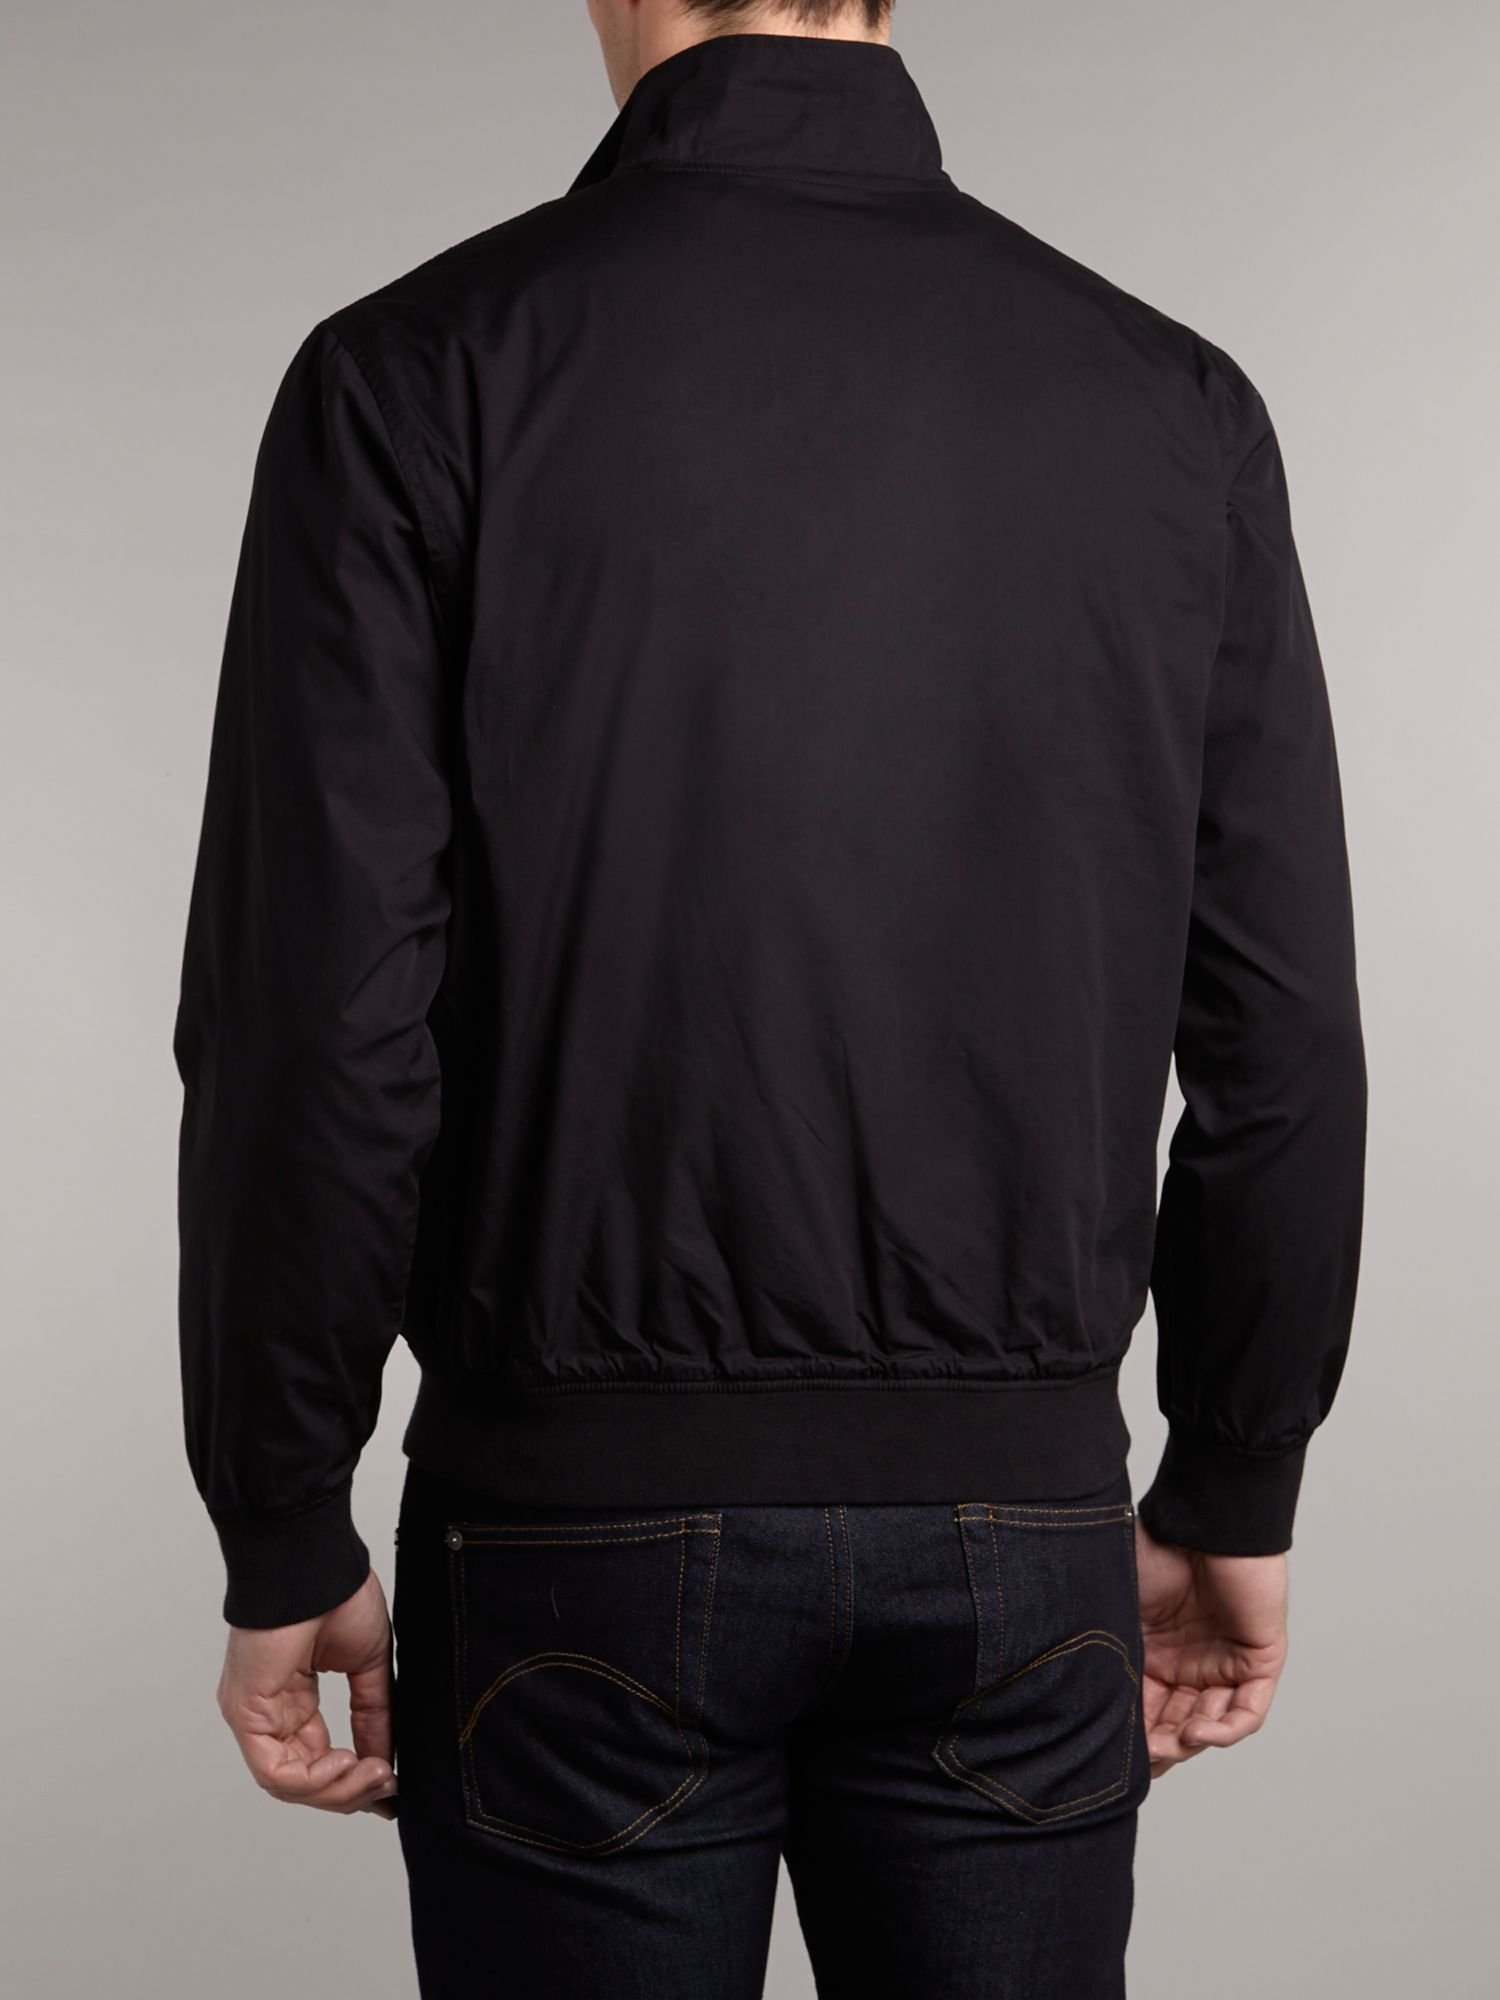 Lyst Fred Perry Sailing Jacket In Black For Men